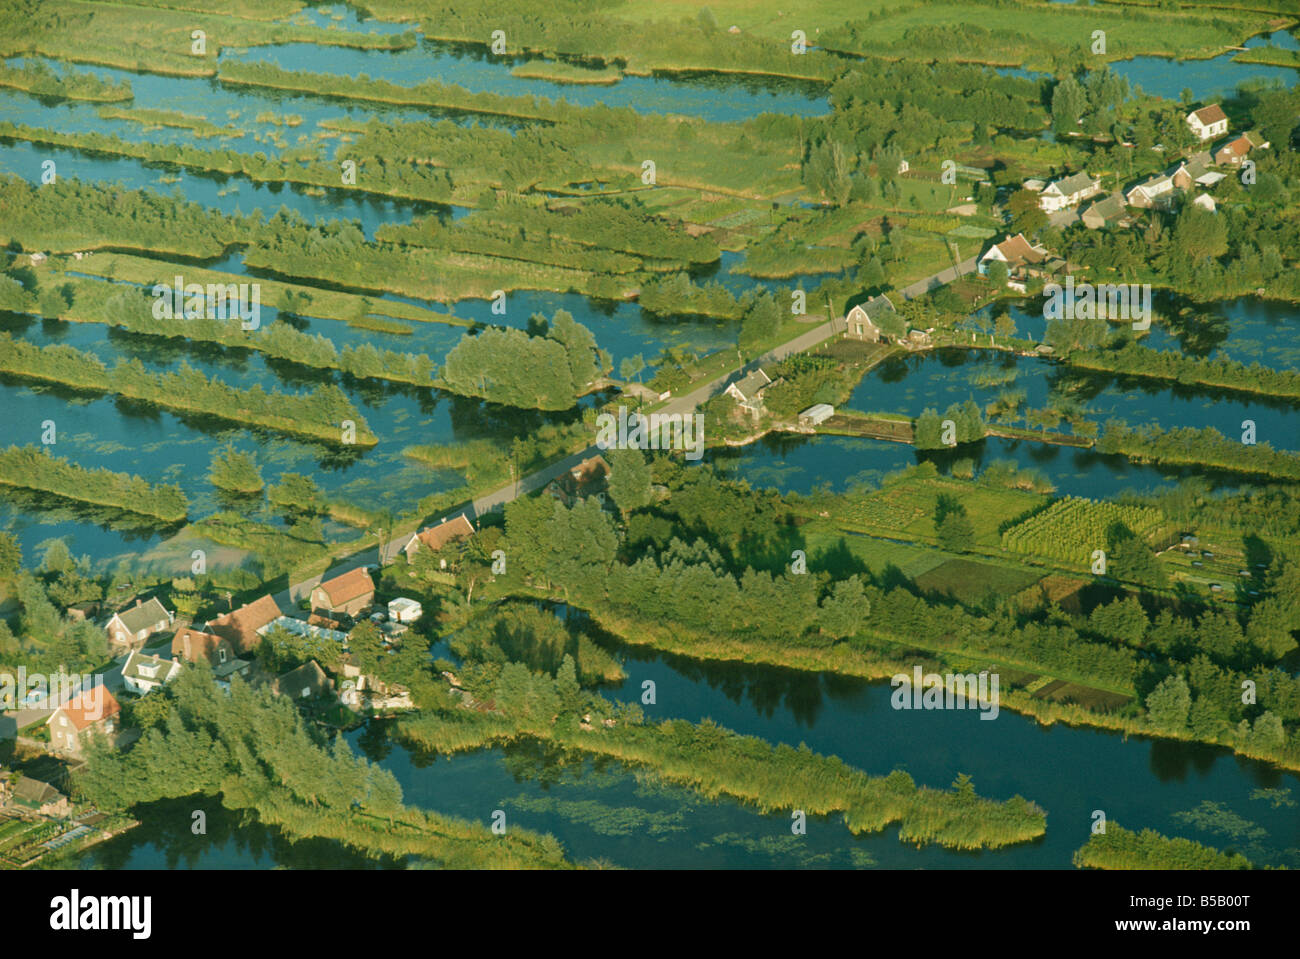 Aerial of a road across a landscape of water and tree lined embankments between Haquet and  Utrecht in the Netherlands, Stock Photo